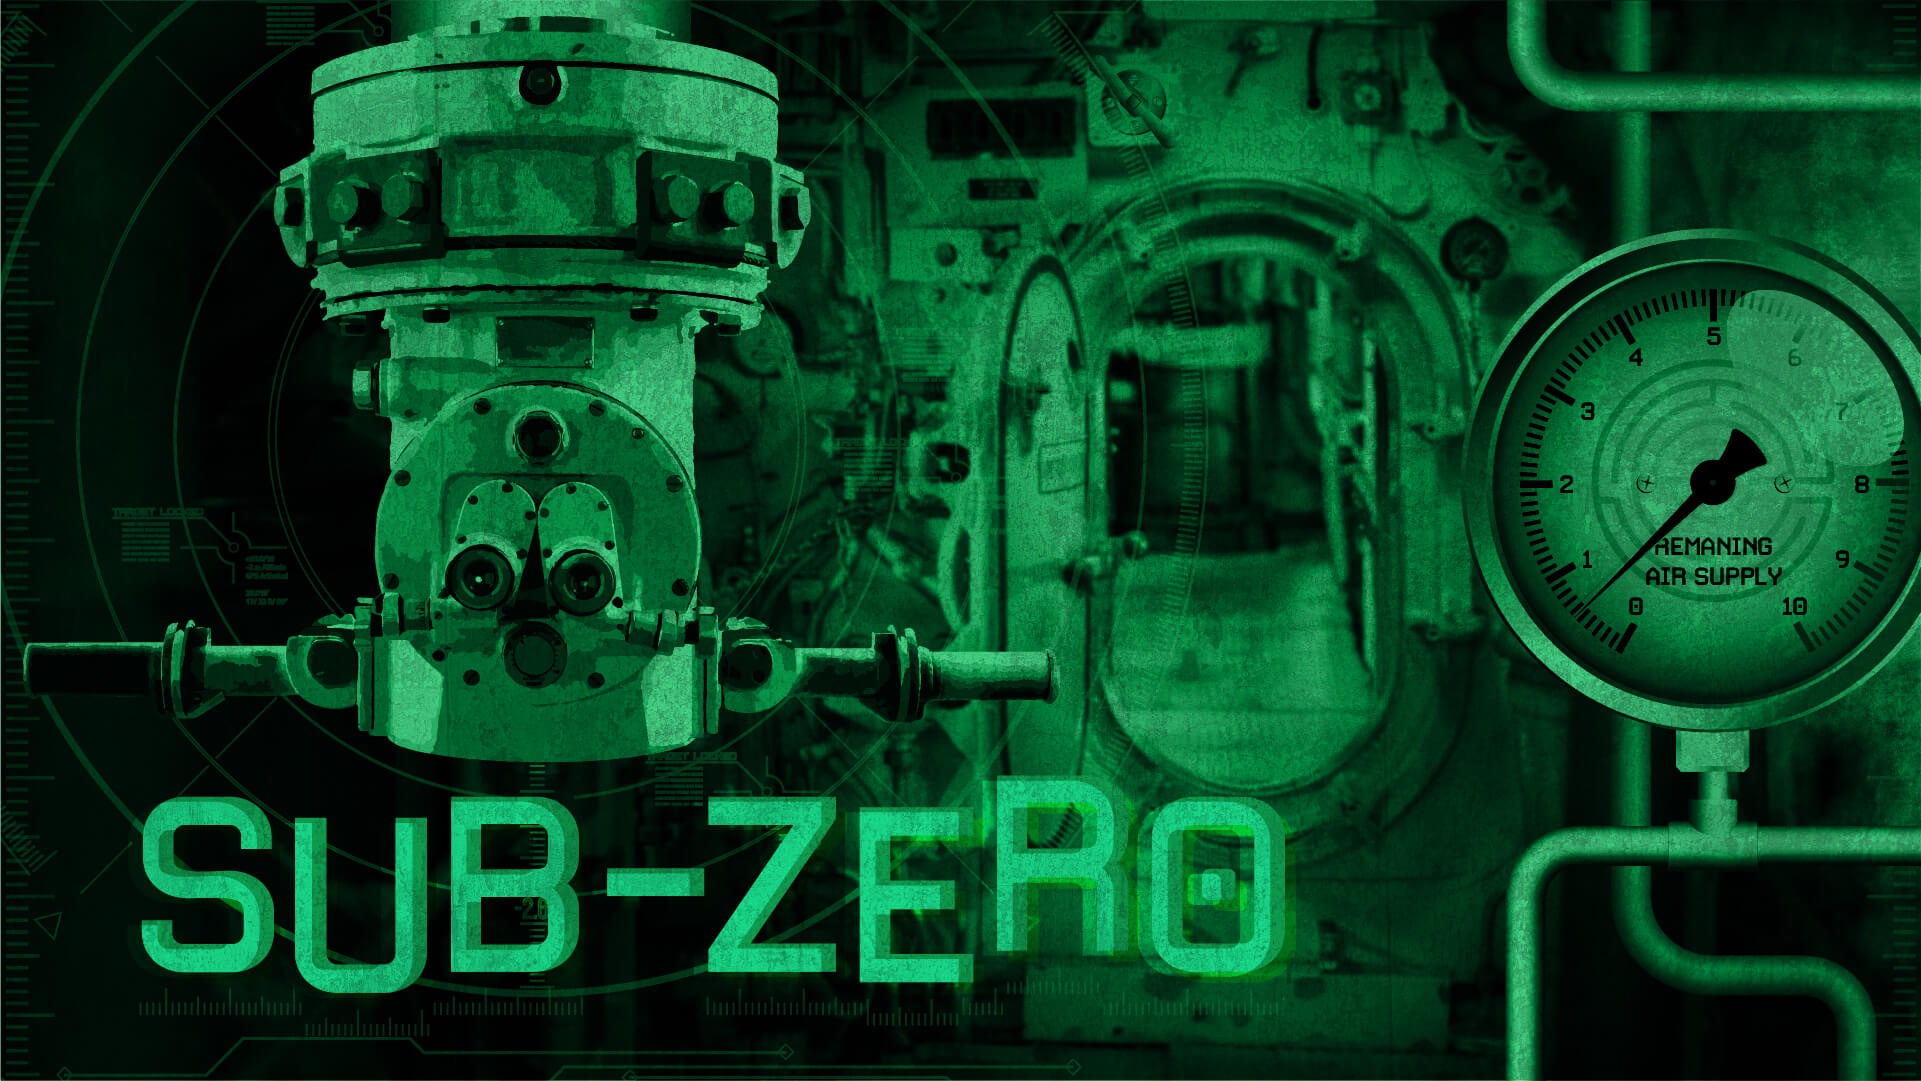 sub zero - The HMS Unicorn is an old sturdy submarine. On its last voyage before being decommissioned it seems the old sea dog has decided that its final resting place is here, in the middle of the ocean. The generators have died and you have enough power for the engines and oxygen for just a short period. You've got 60 minutes to get the generators back online and save your crew.